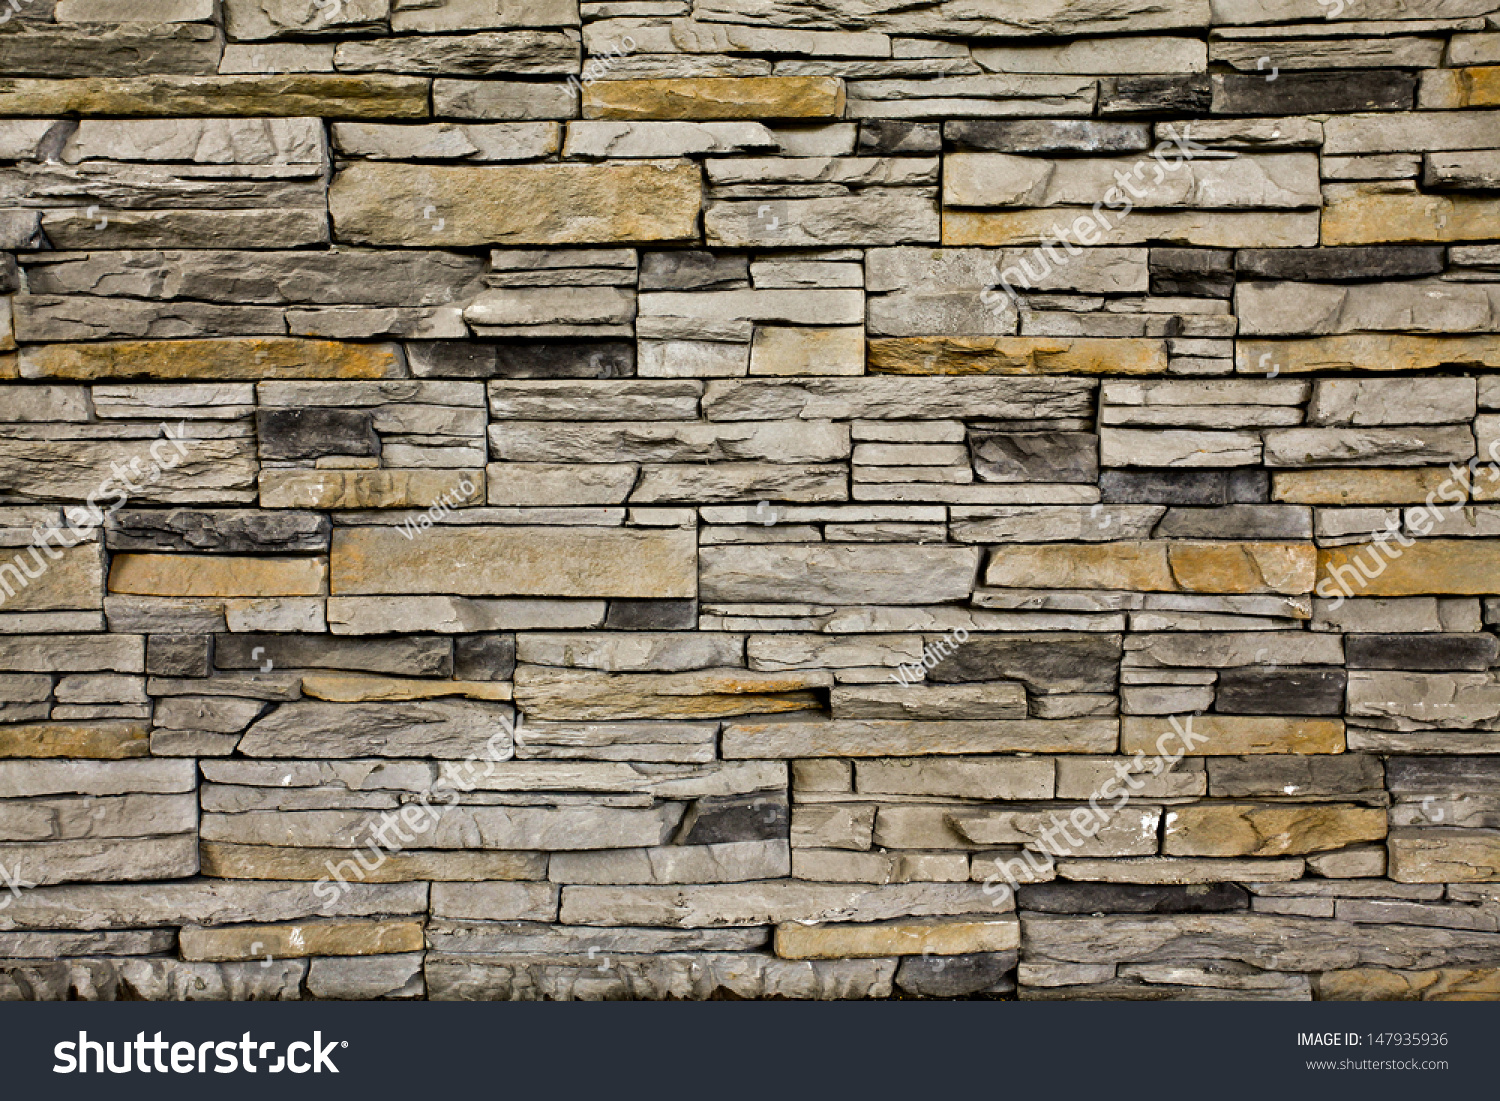 Grungy textured red and yellow stone wall inside old neglected and deserted  interior, masonry and